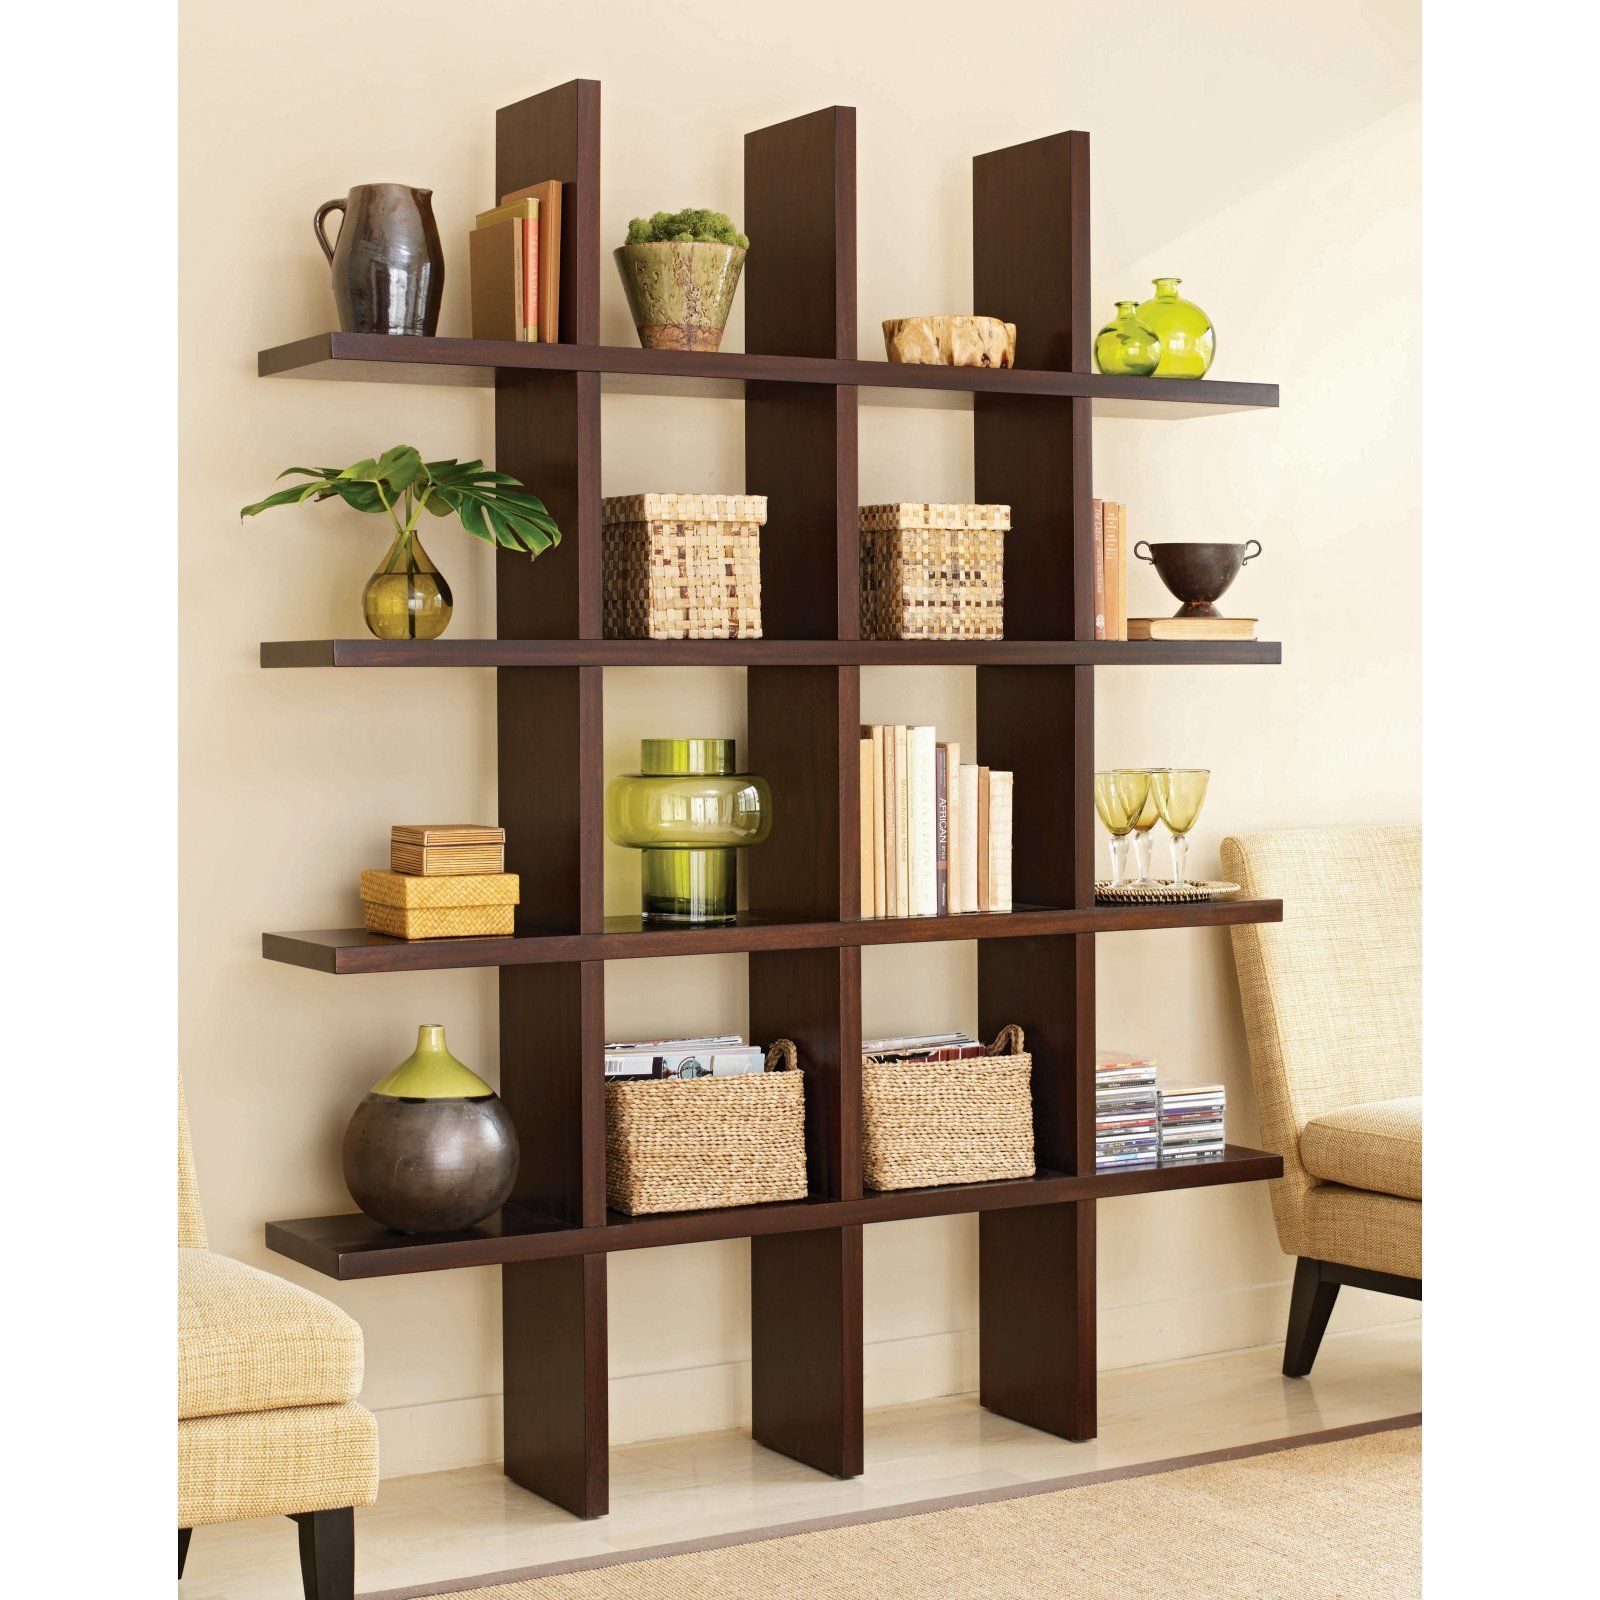 Image Result For Floating Book Shelves In Home Office Office Ideas